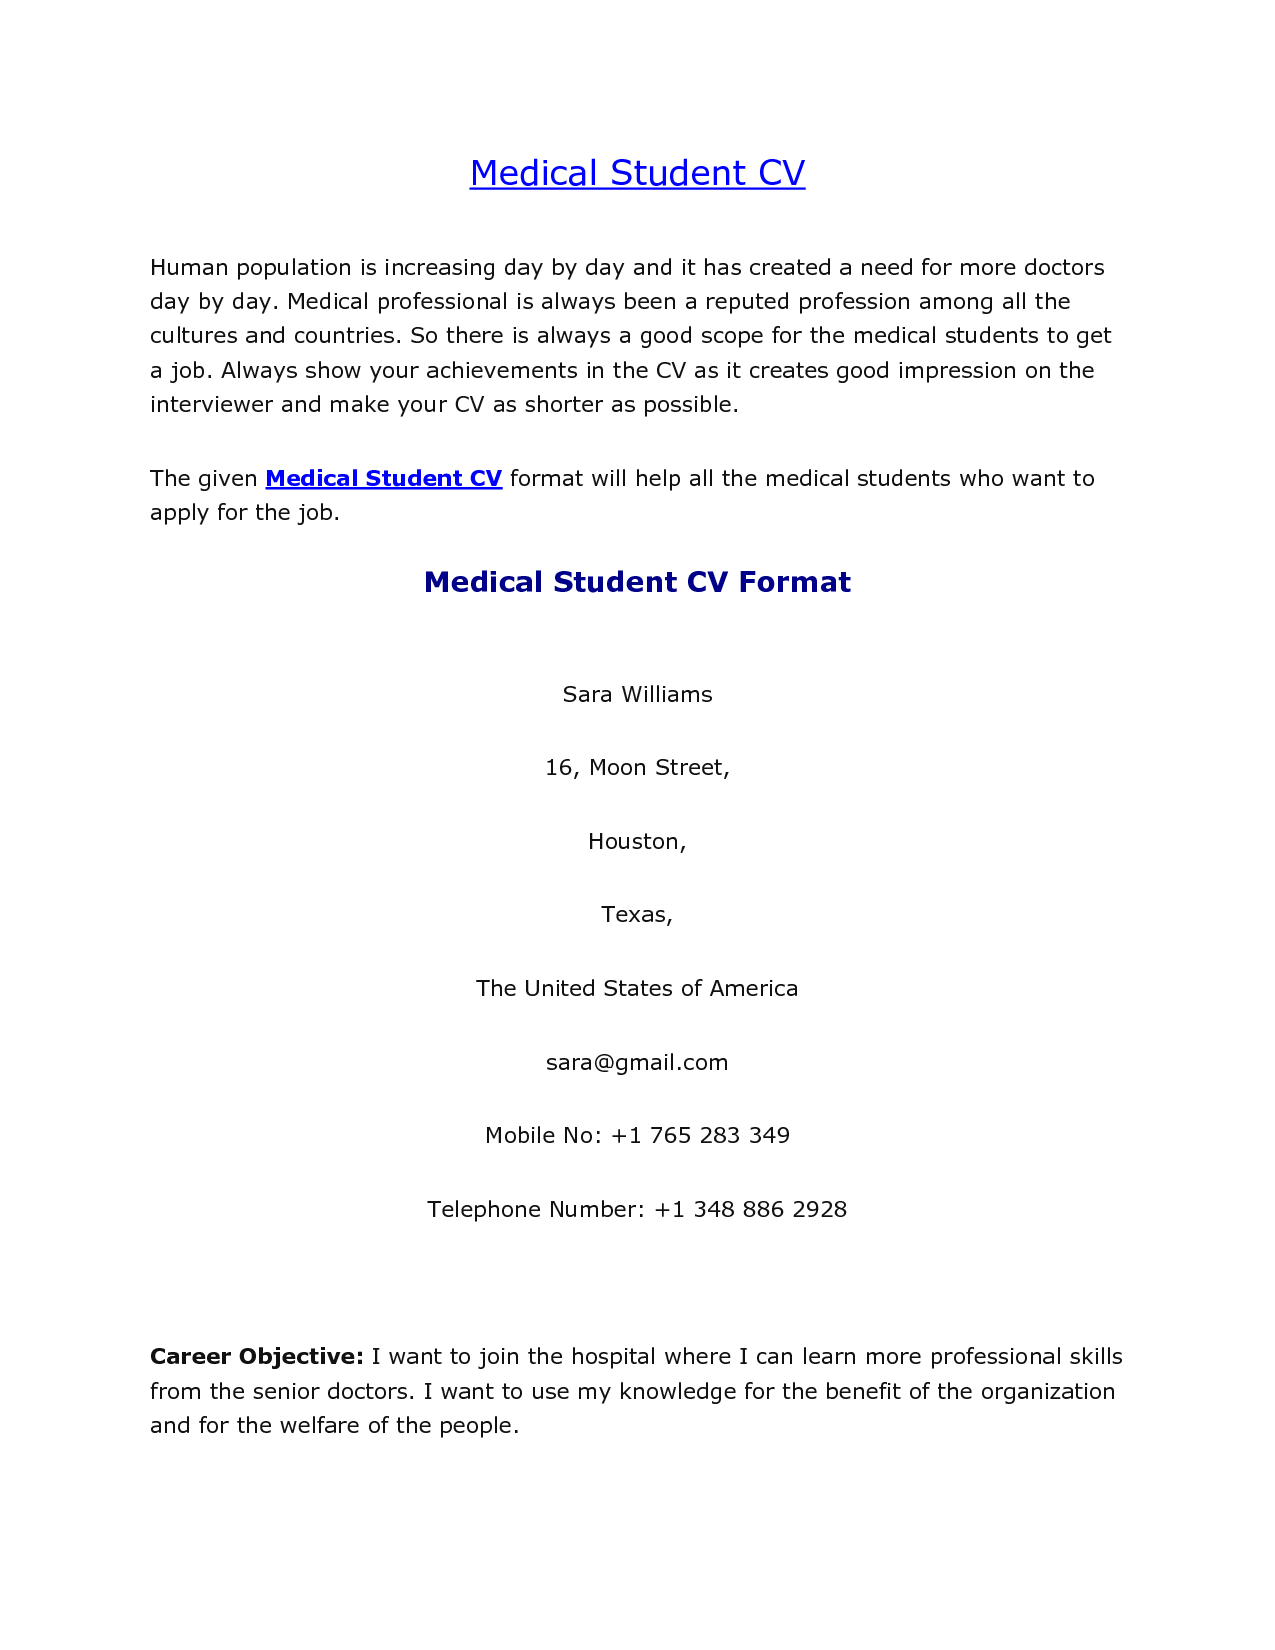 Medical Student Cv Sample  Resume Template    Medical